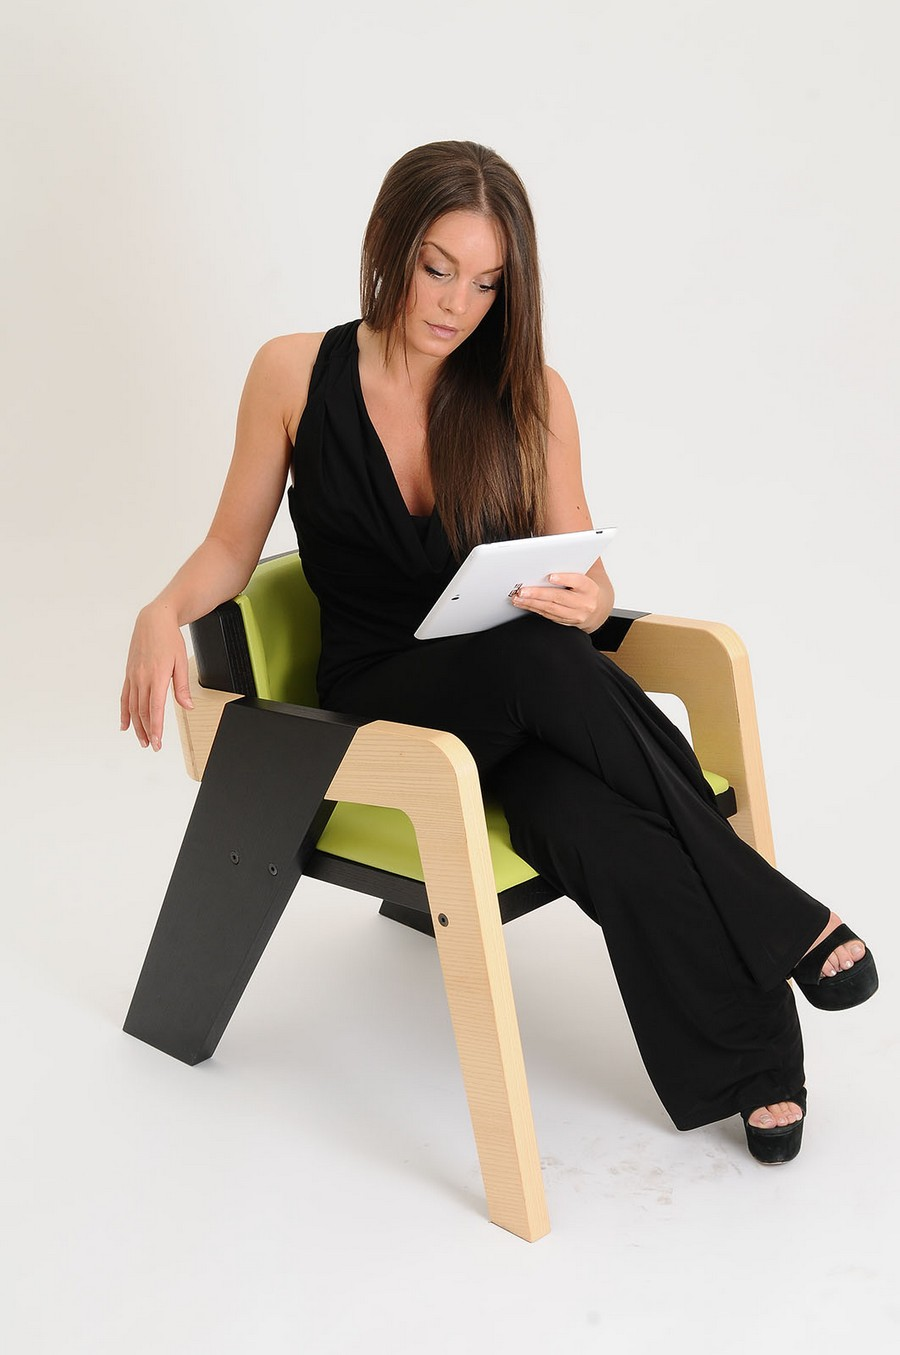 elegant-self-assembly-io-chair-from-two-toned-wood-12